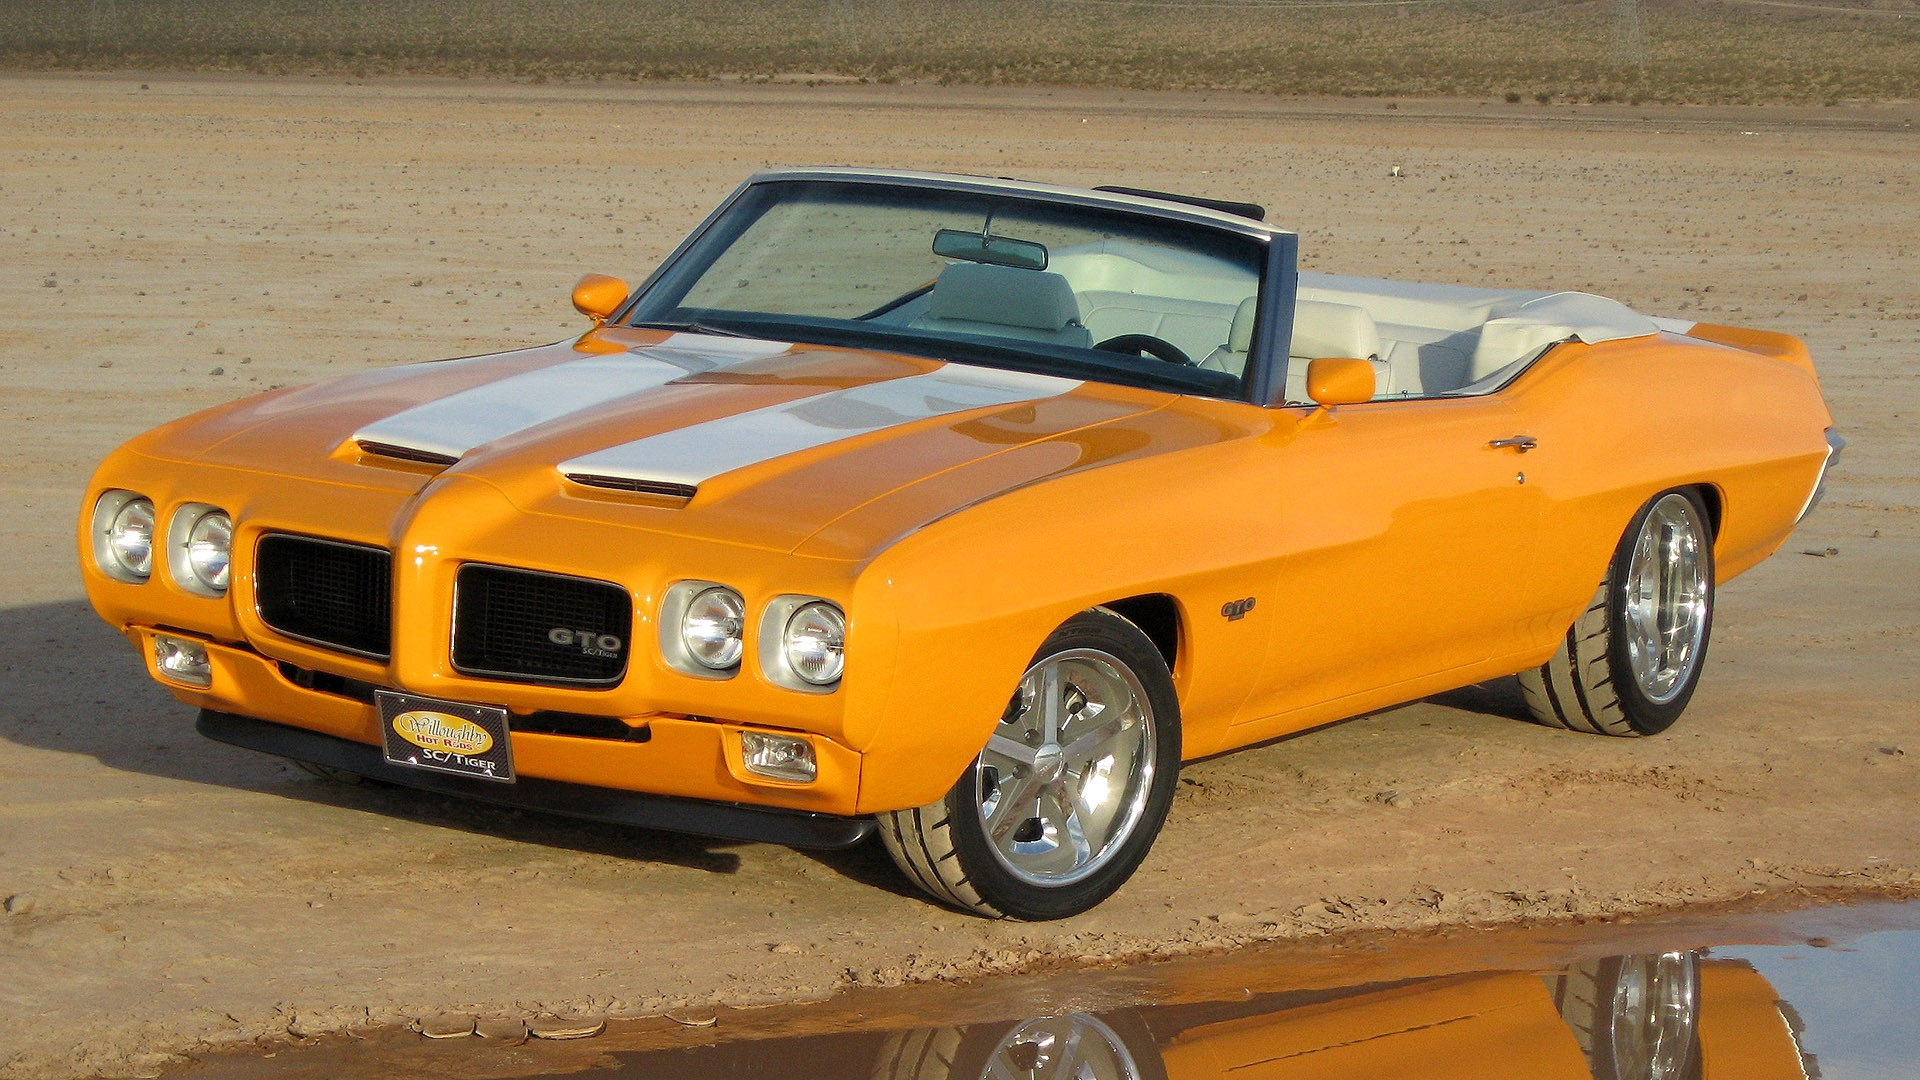 Pontiac Gto Sport Coupe Cars Hot Rod Classic Cars